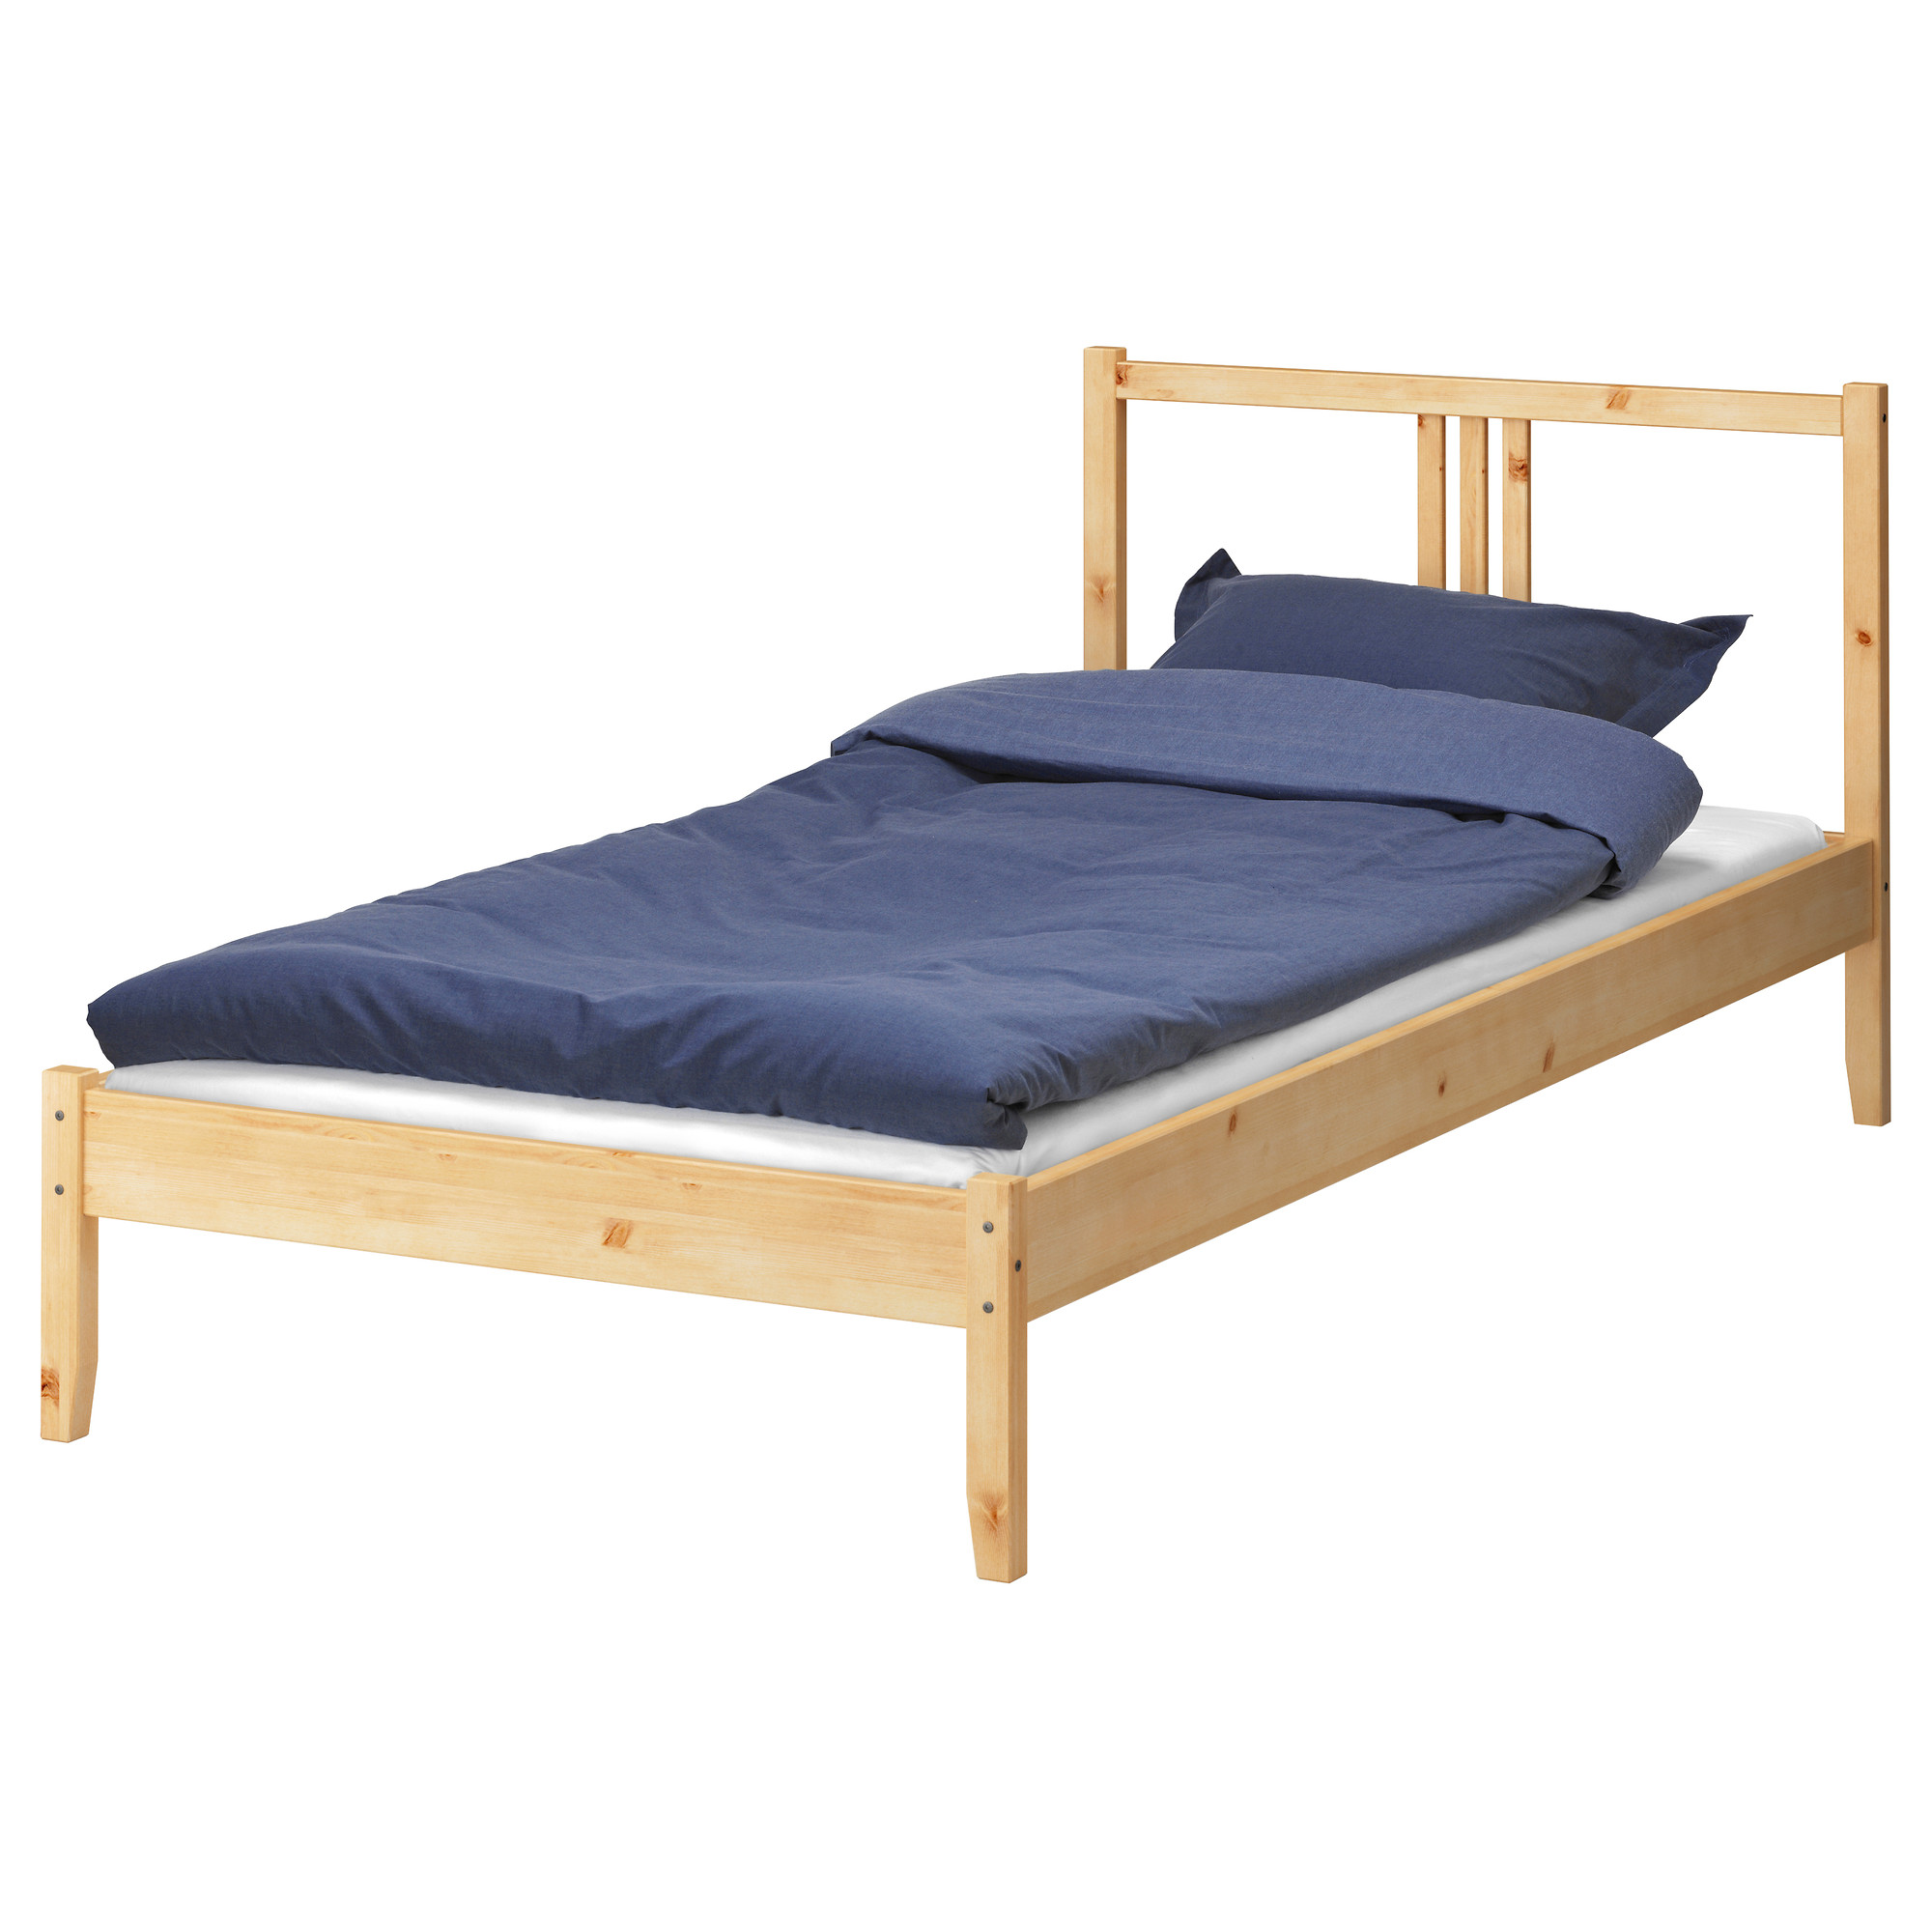 Wonderful twin xl bed frame ikea homesfeed for Ikea blue bed